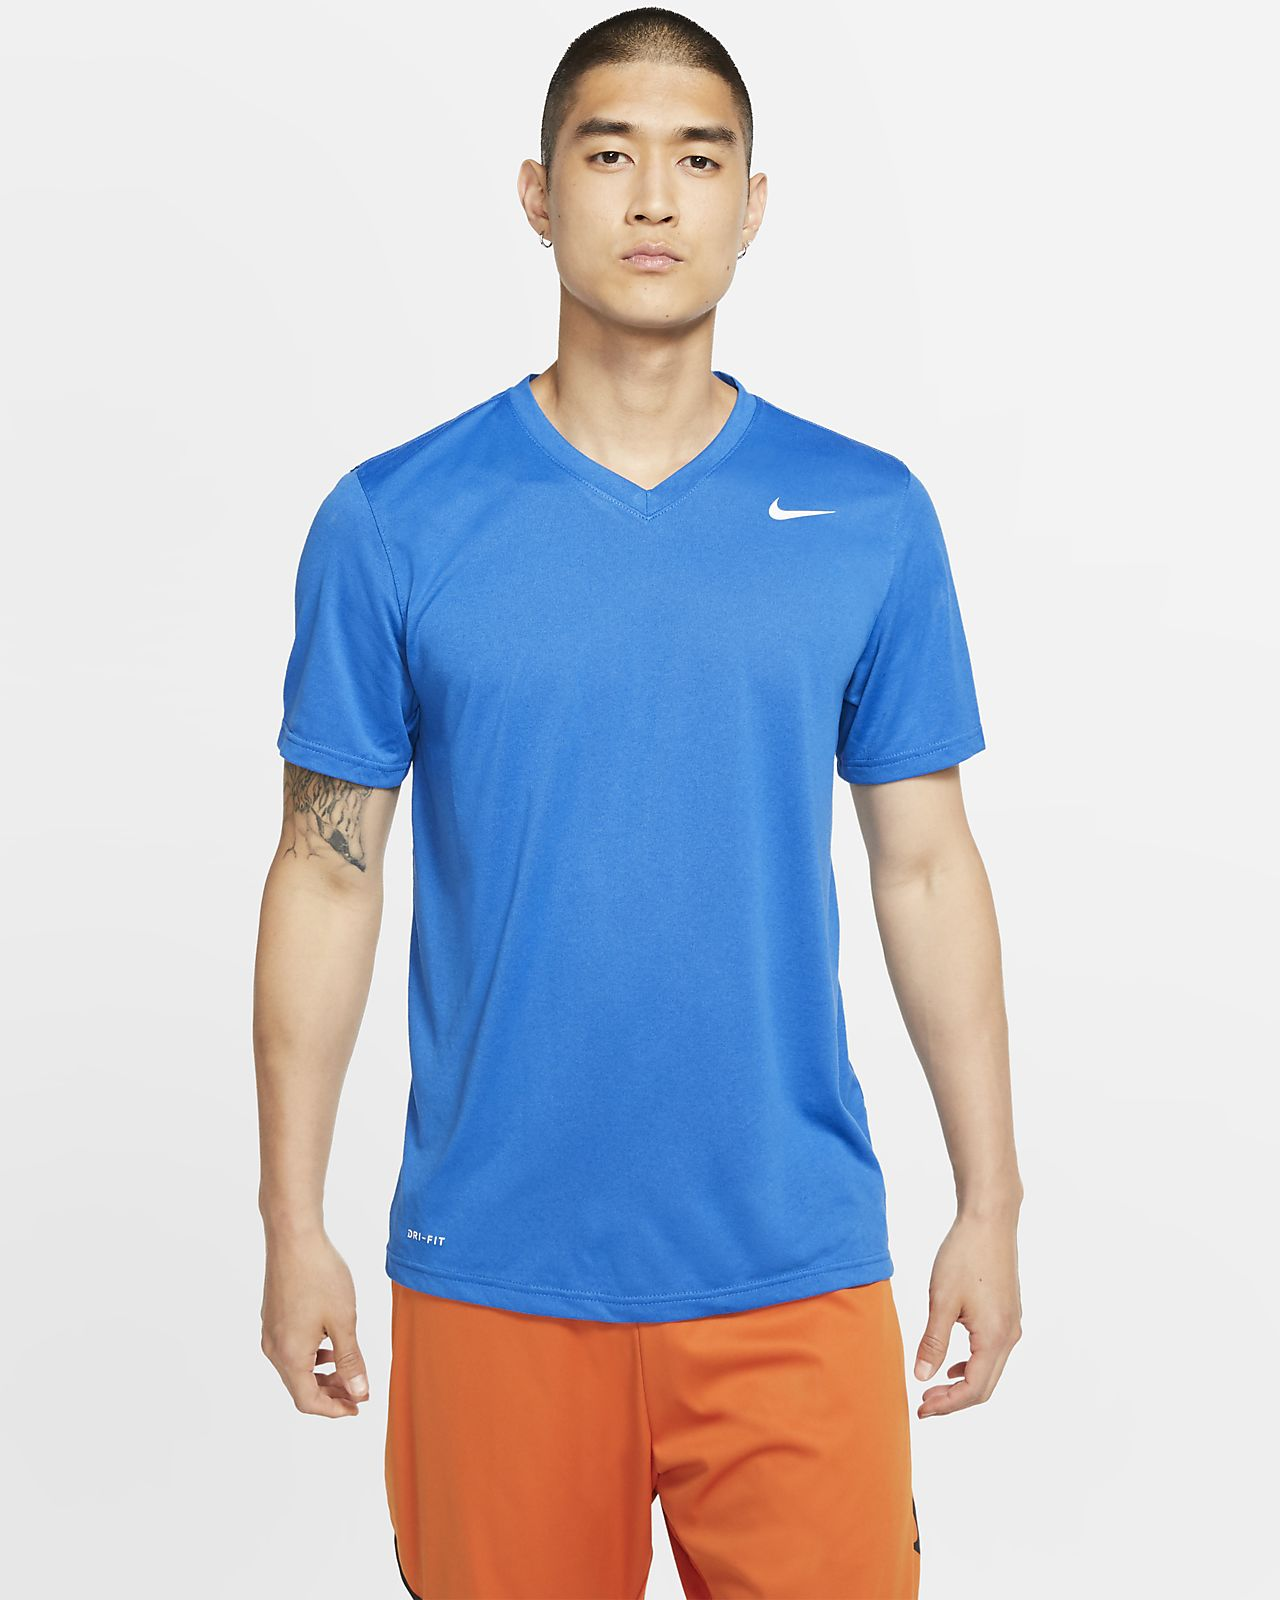 Nike Legend 2.0 V-Neck Men's Training Shirt